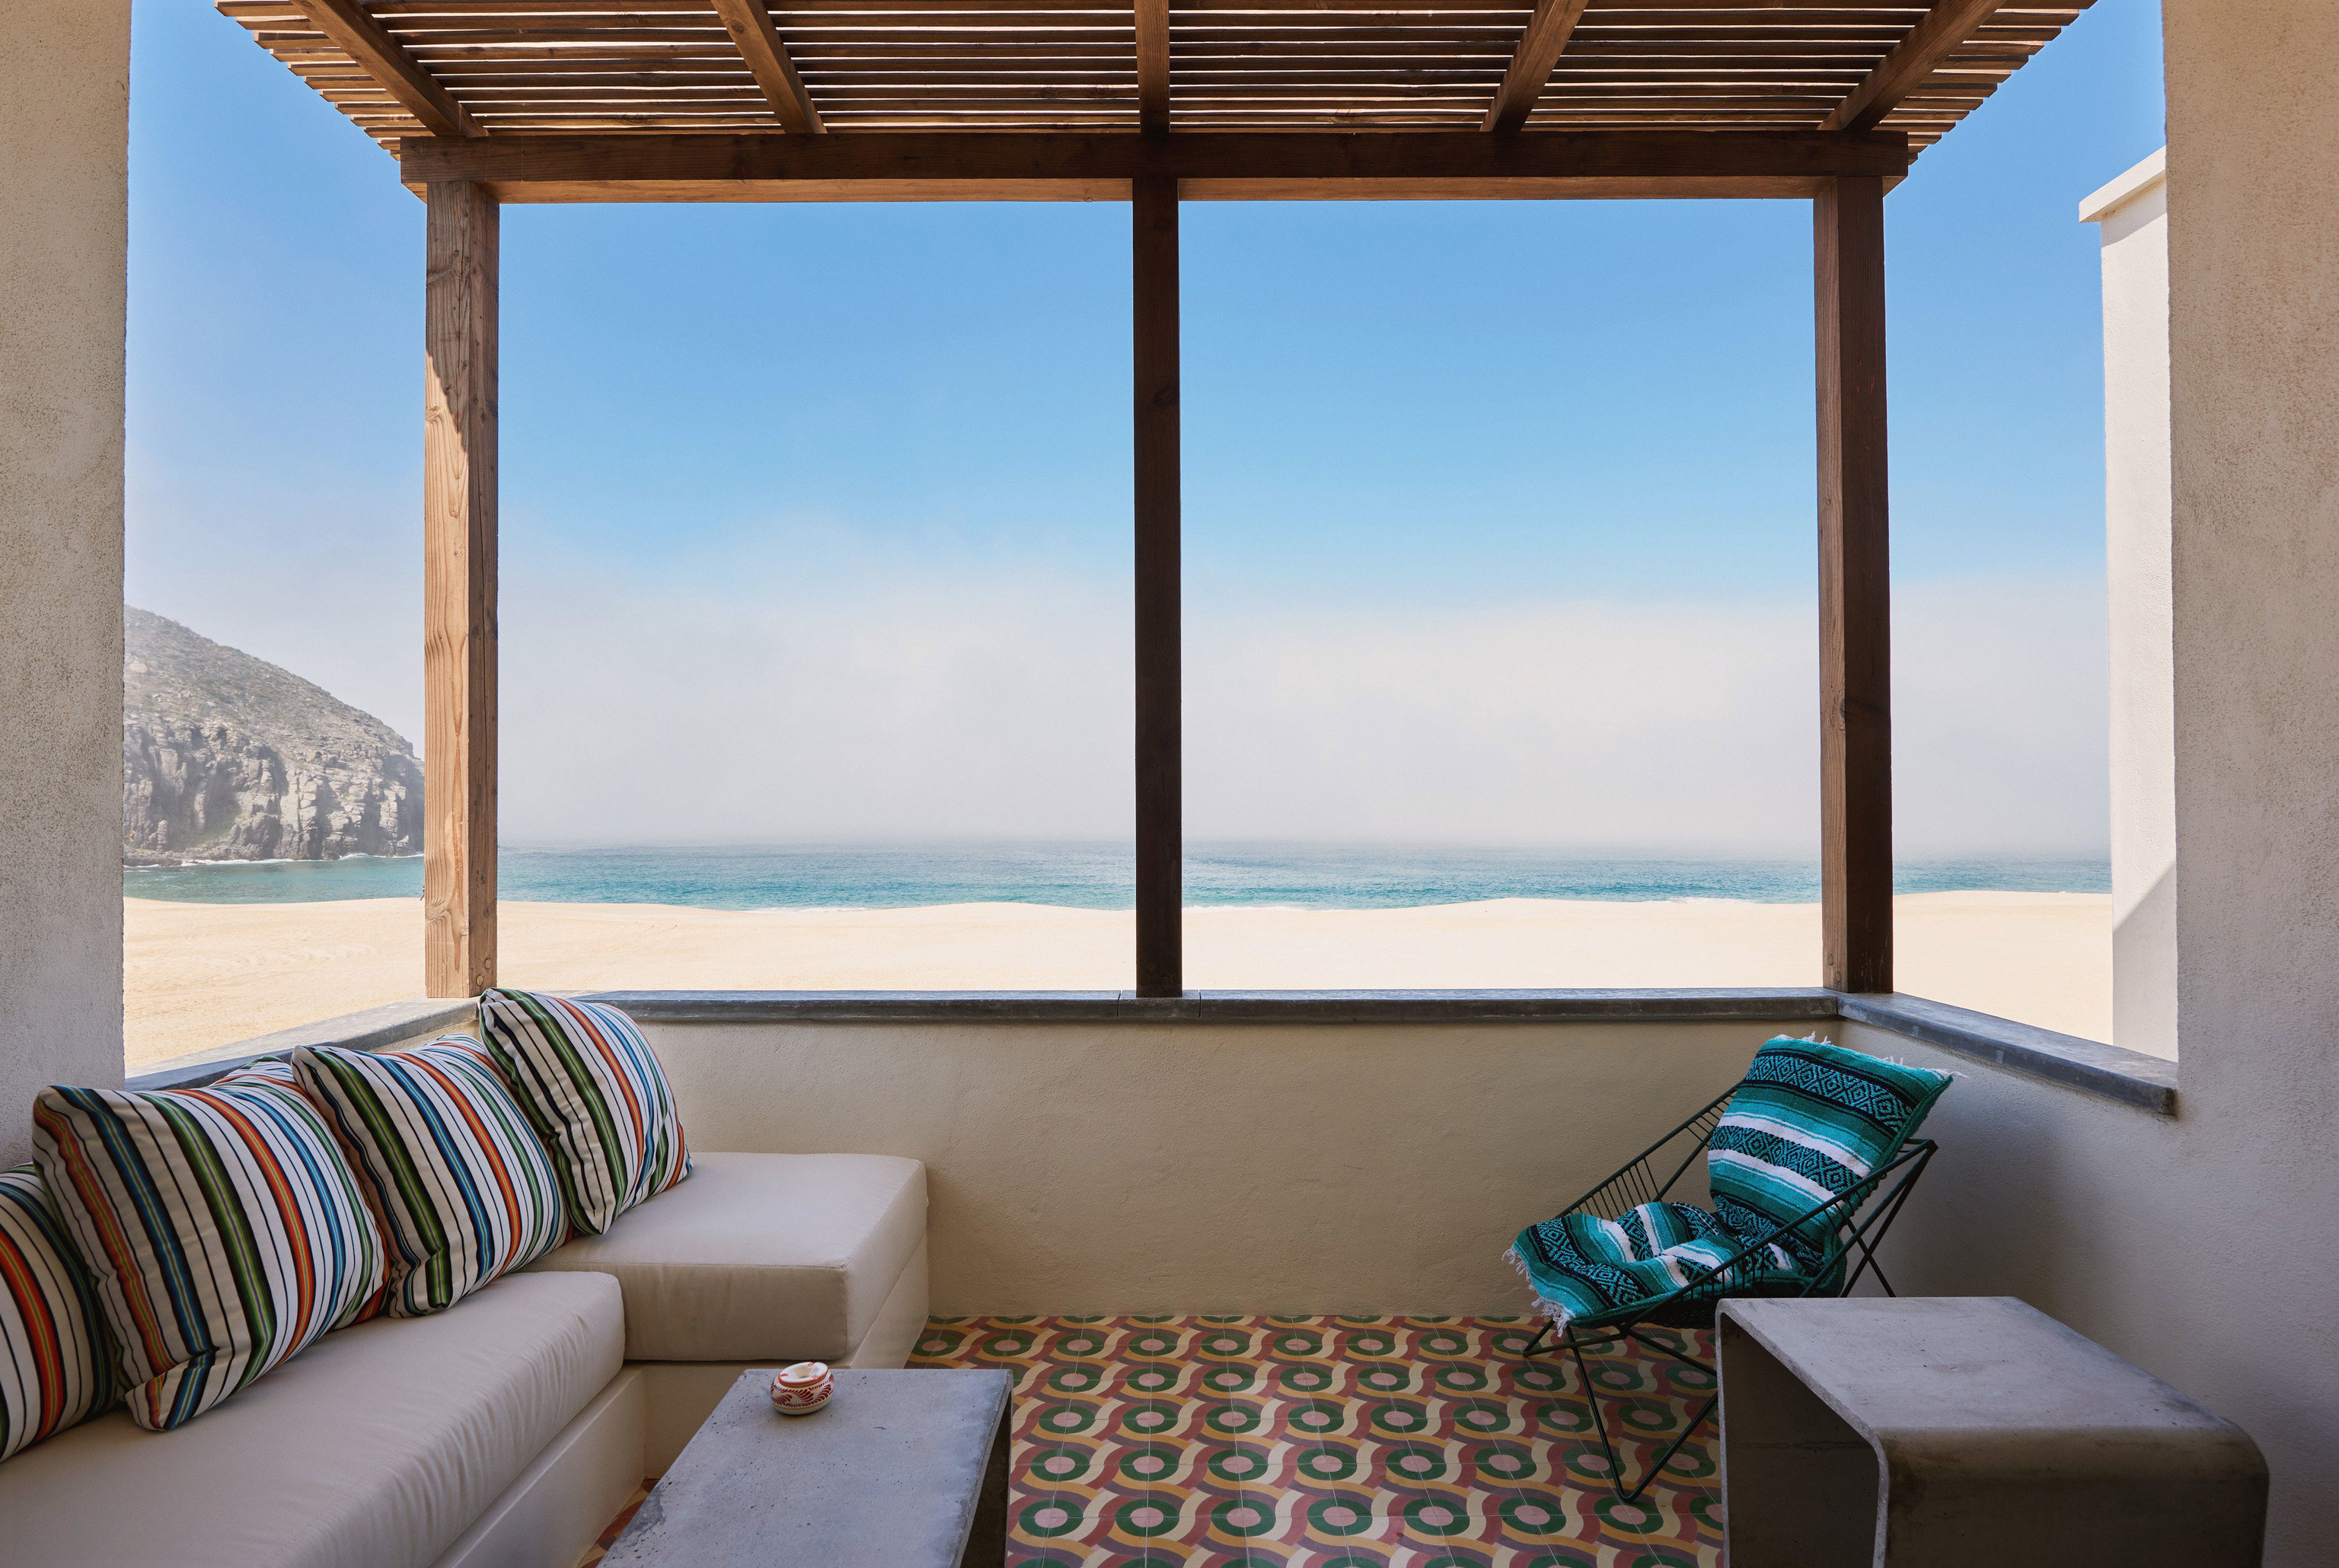 Boutique Hotels Hotels Luxury Travel property chair room house estate living room home window interior design cottage real estate daylighting Design Villa window covering apartment condominium overlooking furniture